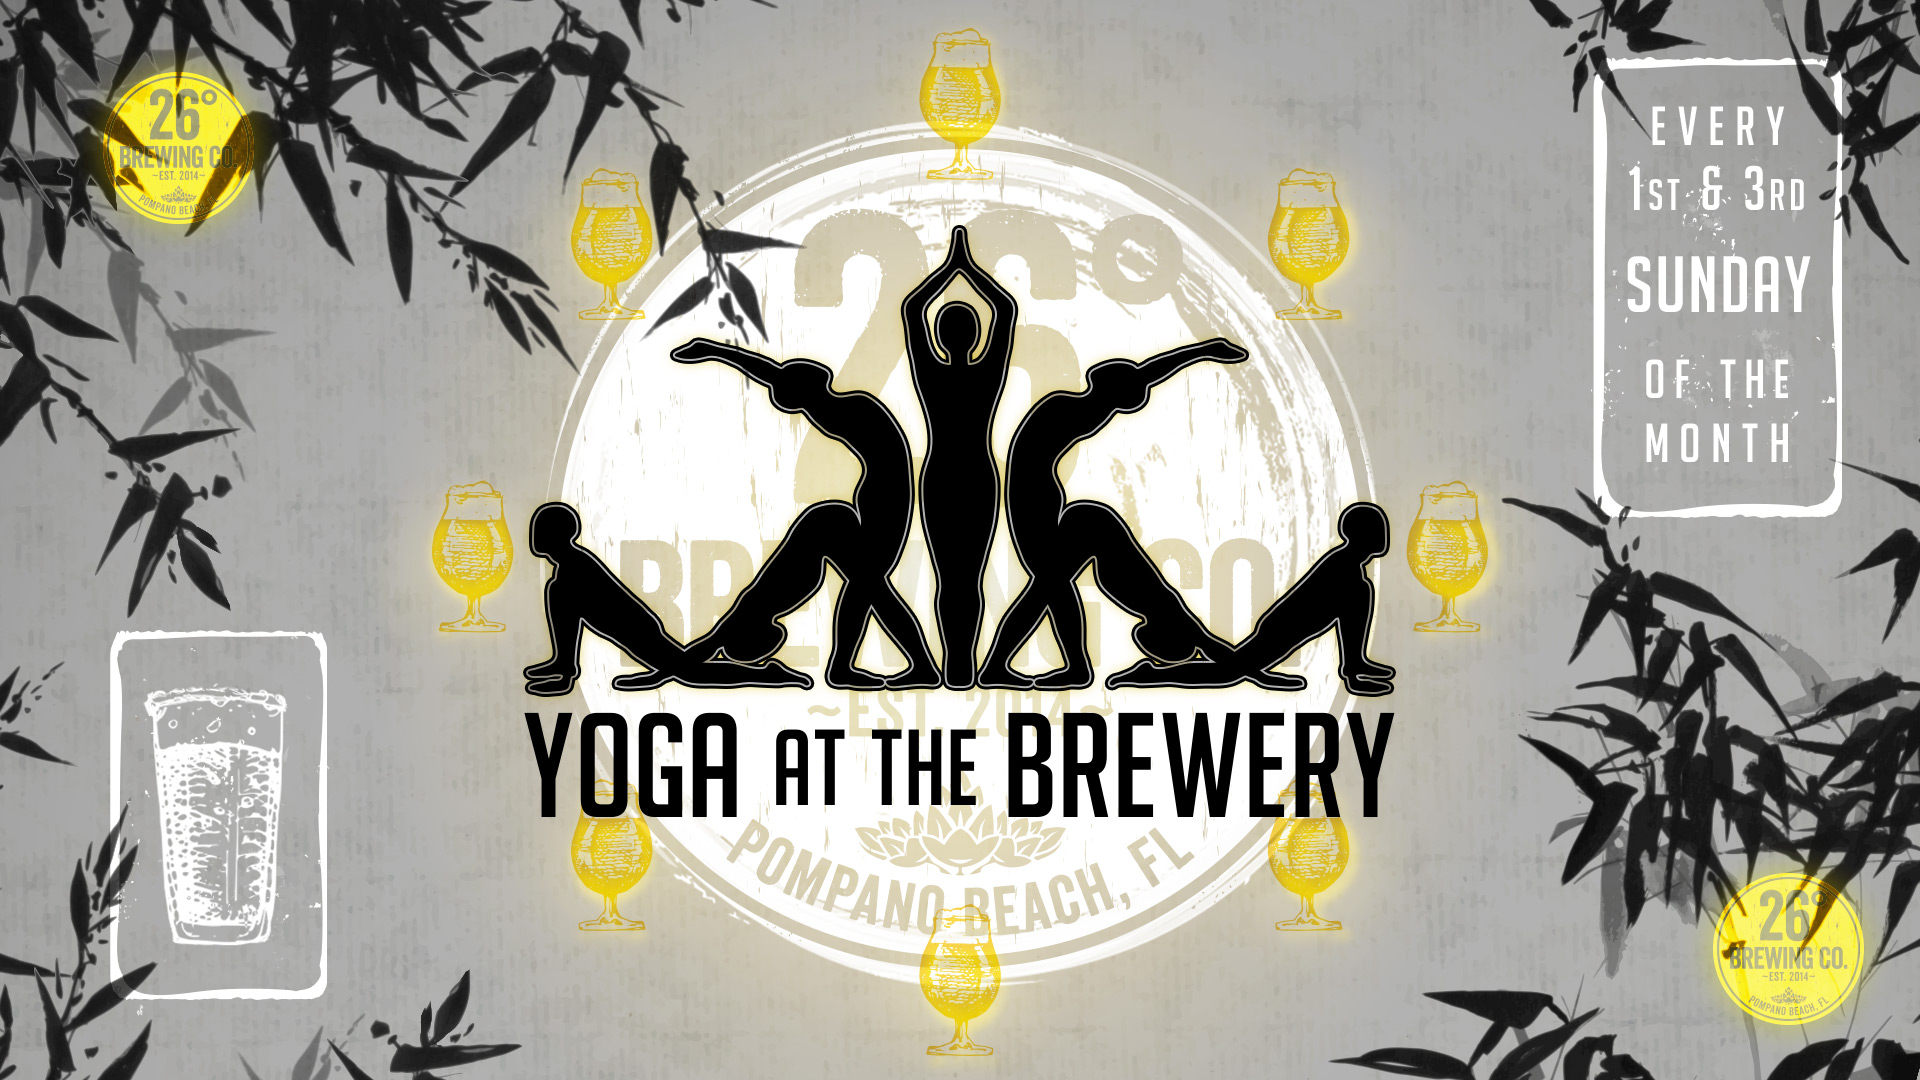 26BREW-17-0050-Yoga-at-the-Brewery-1-3-Sunday